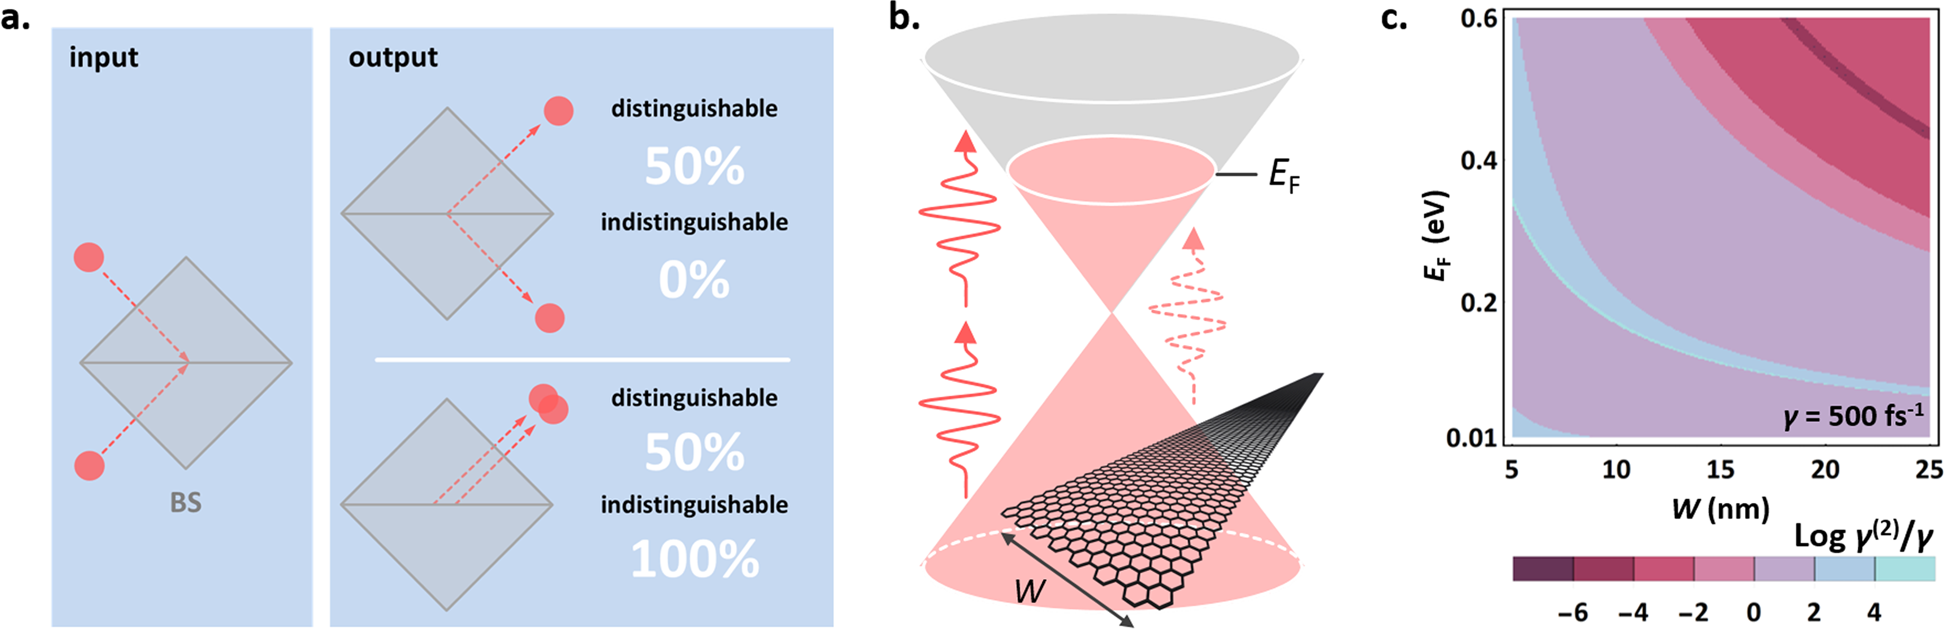 Quantum computing with graphene plasmons | npj Quantum